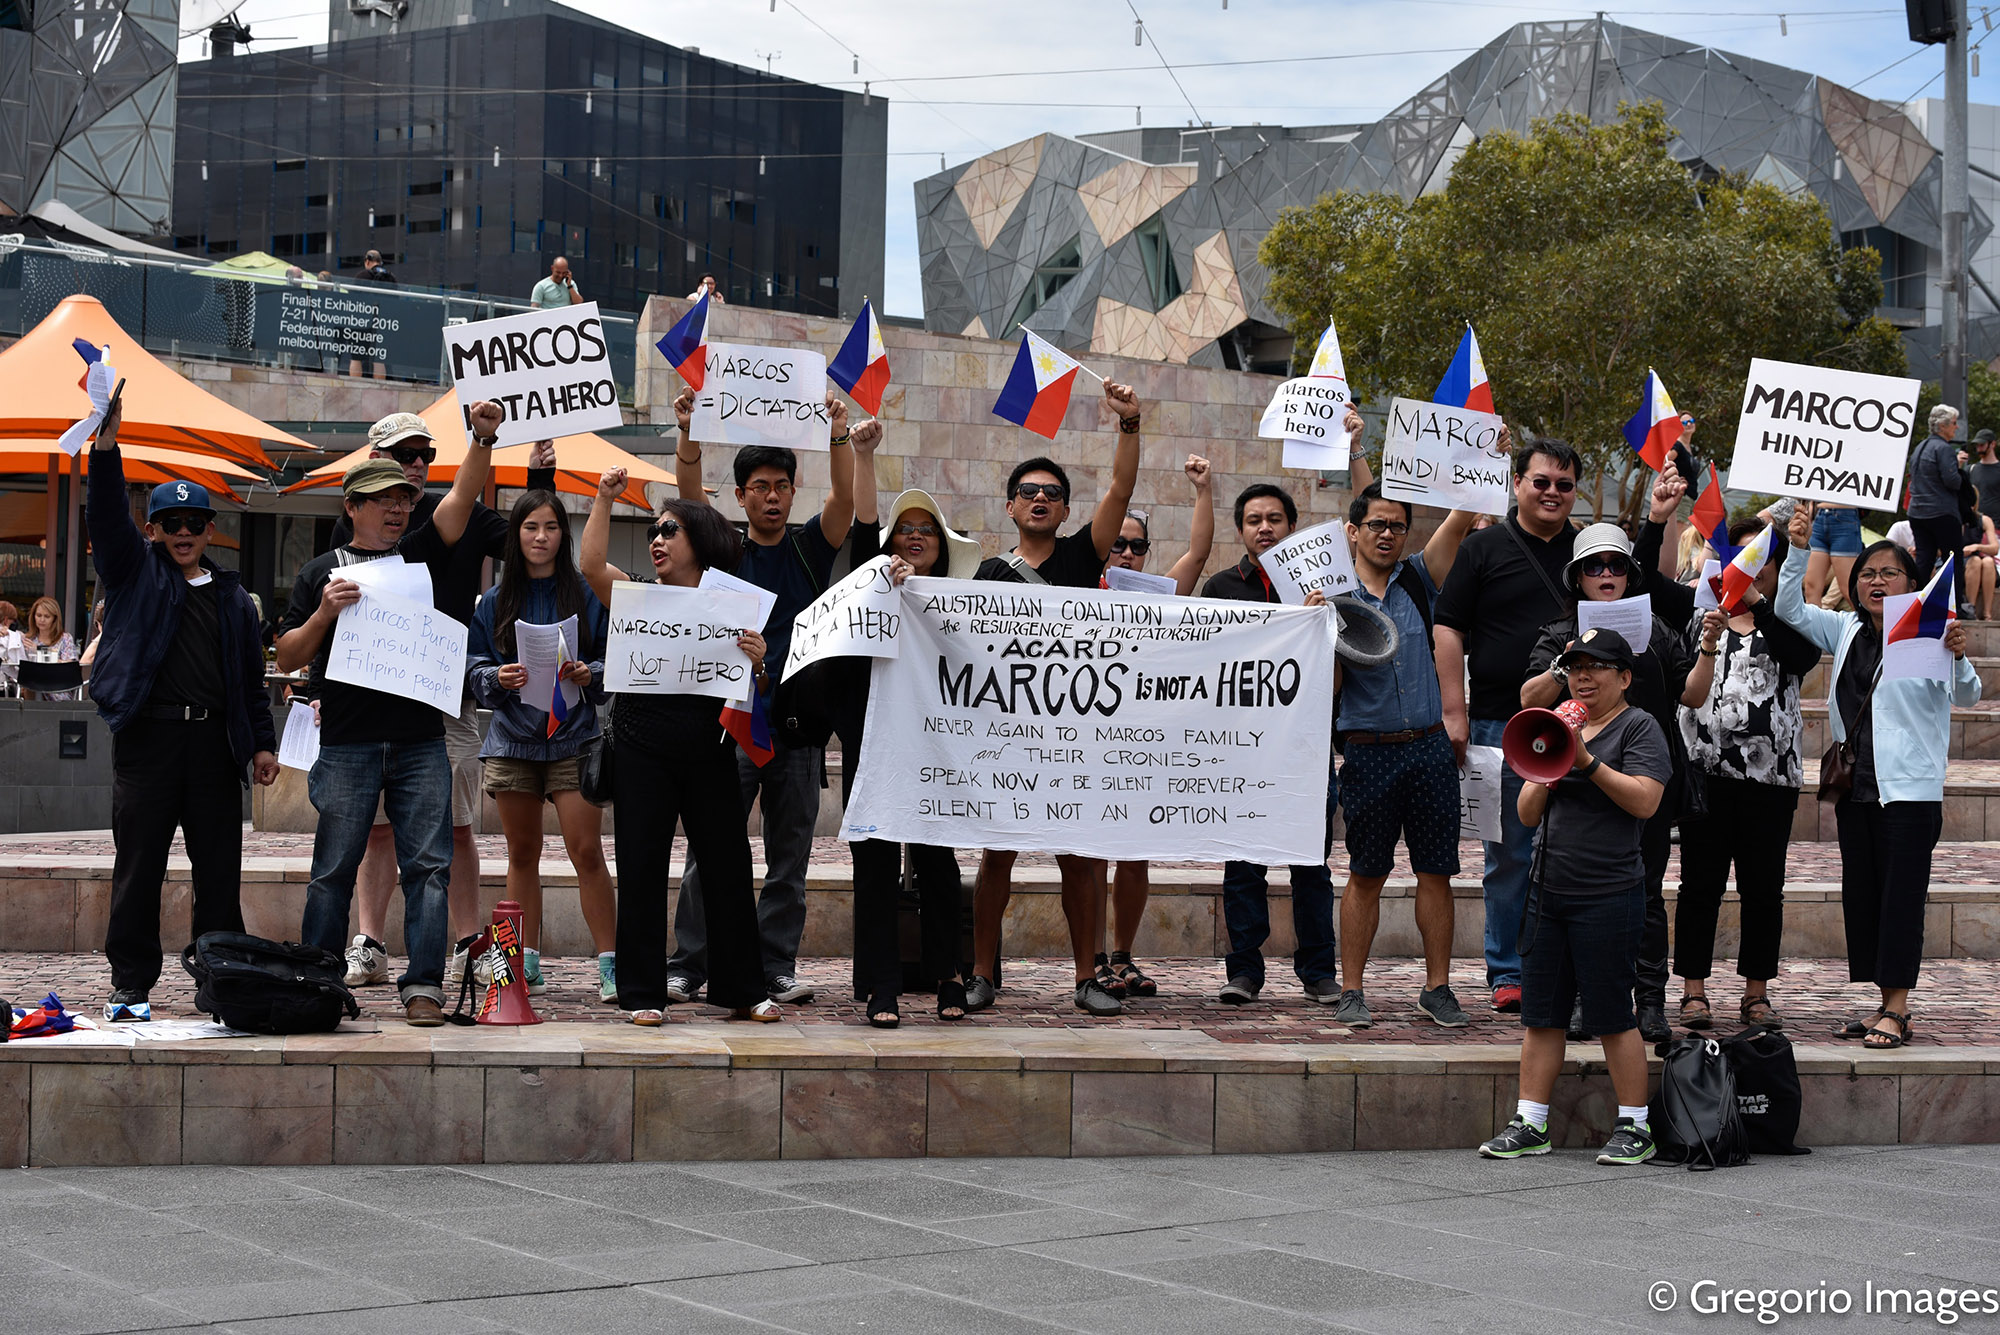 Anti-Marcos rally in Melbourne